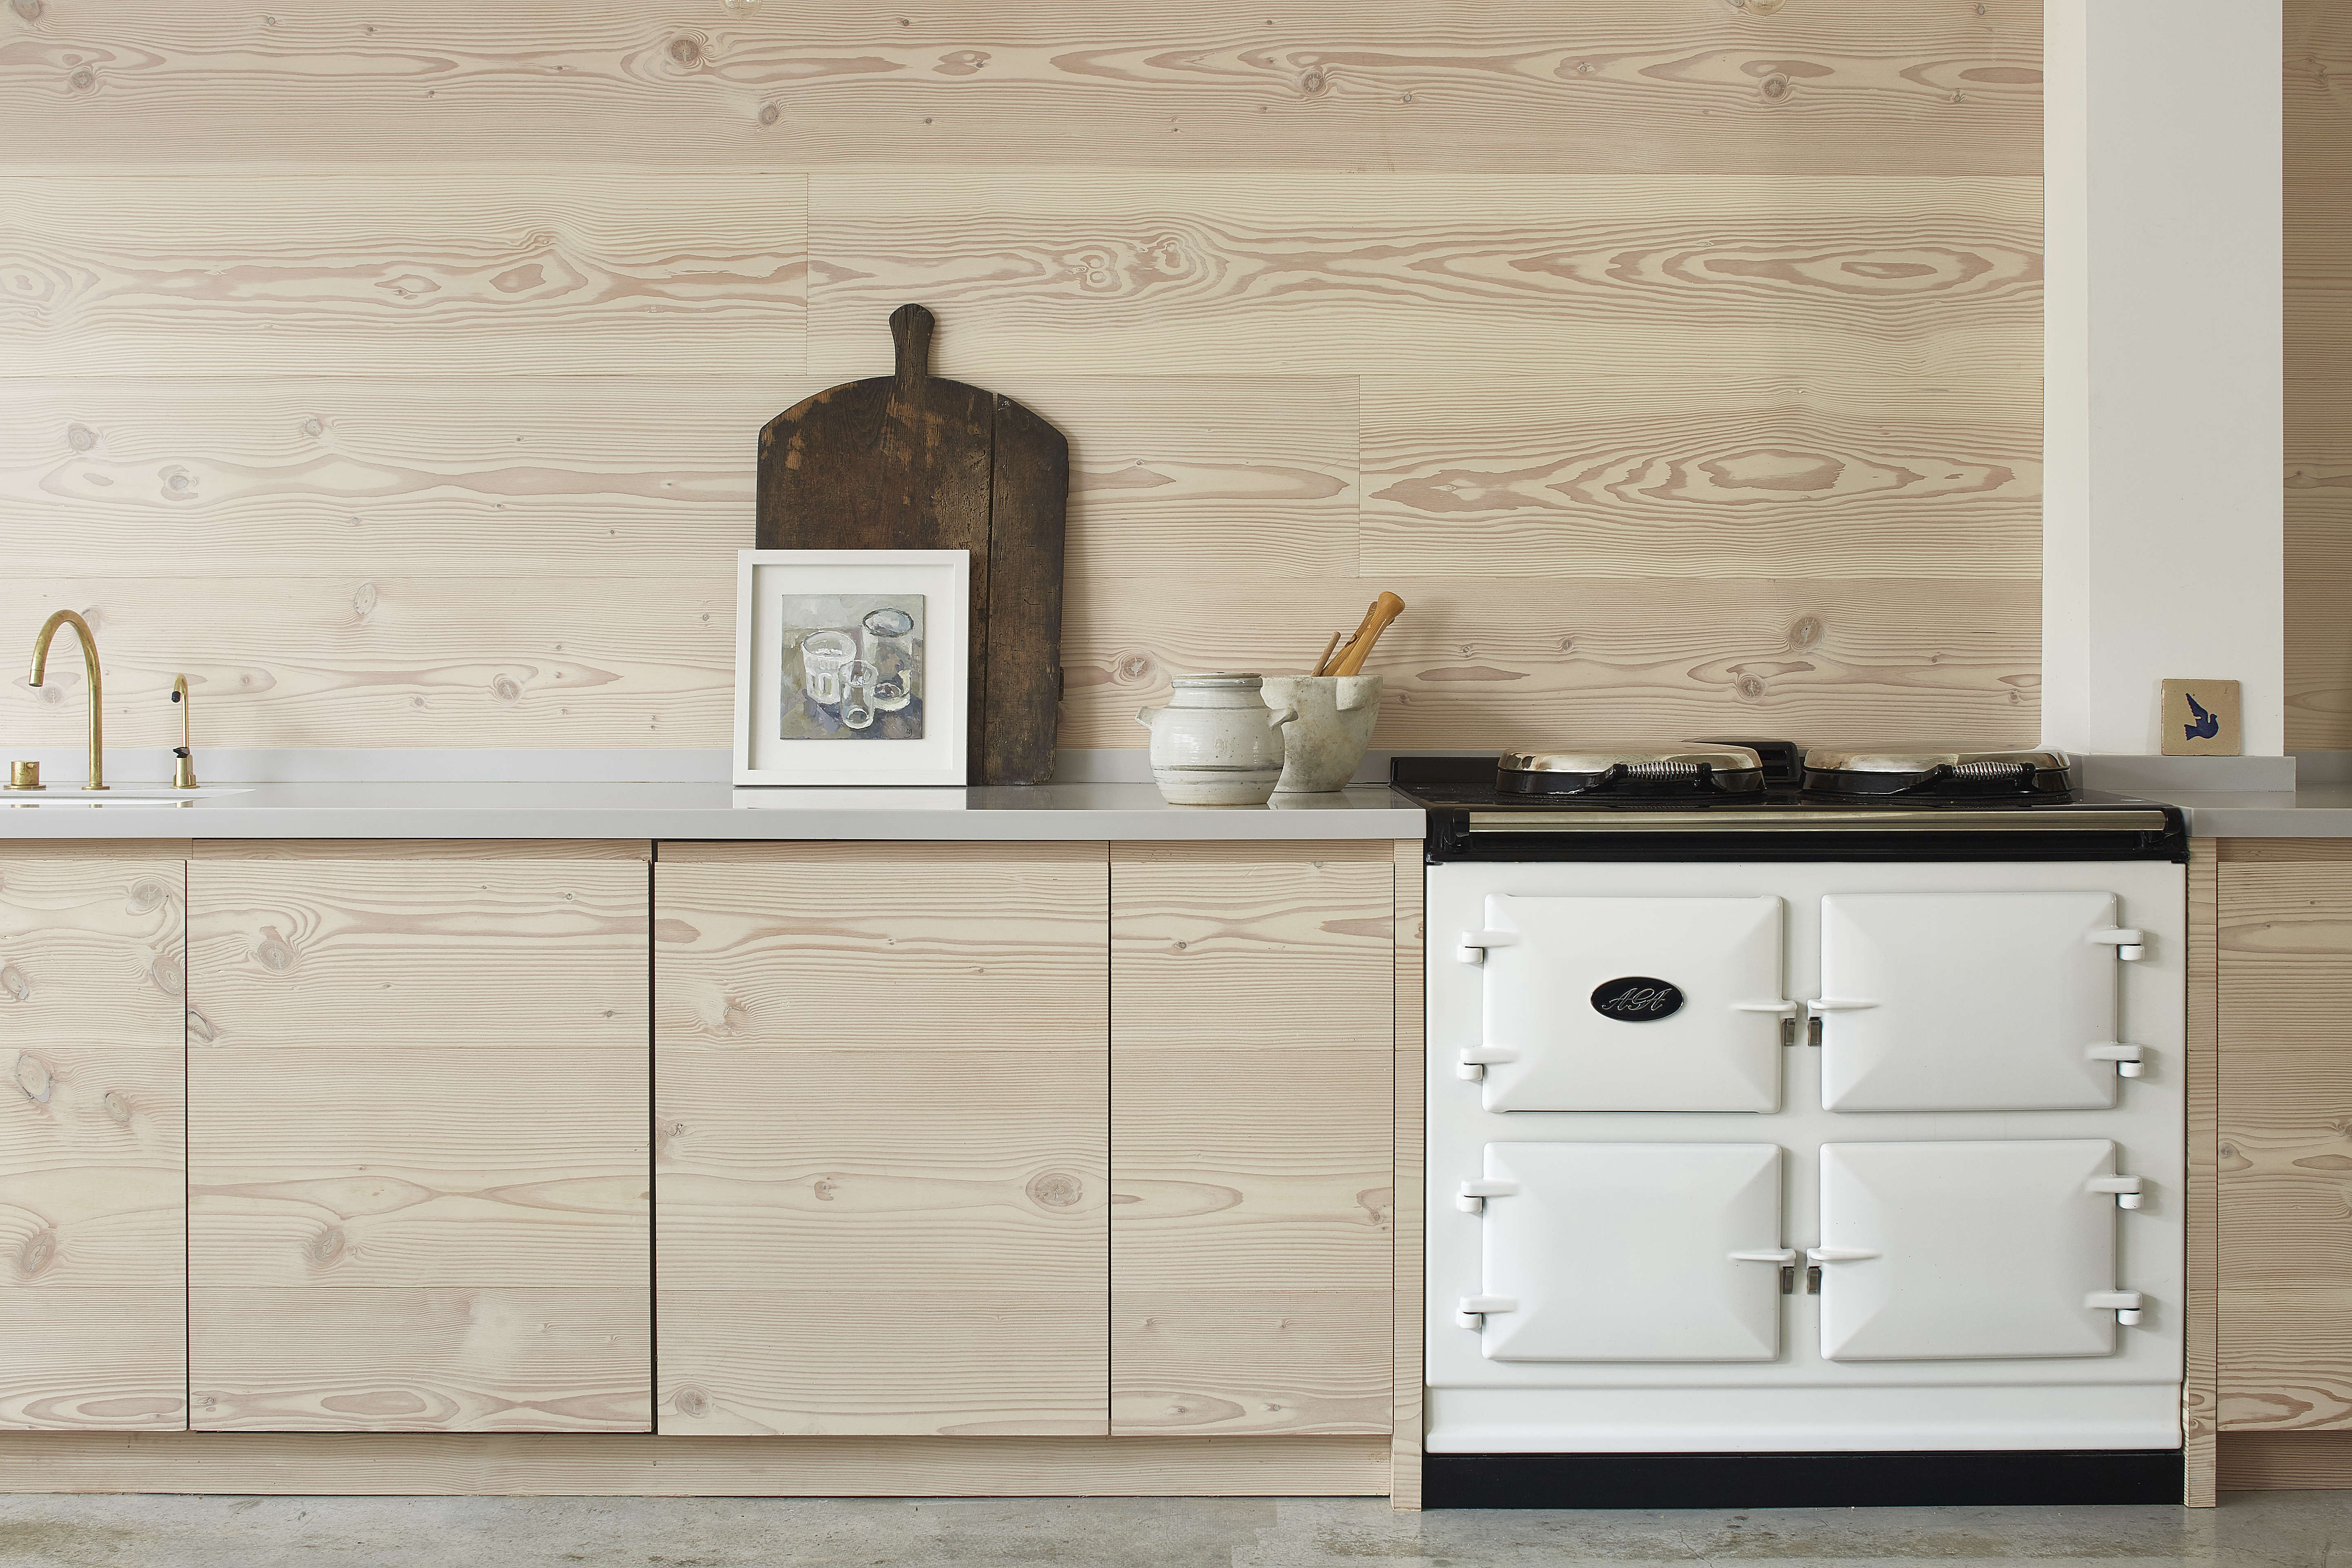 dougls fir cabinets and wall paneling and a white aga in a scandinavian pale wo 10